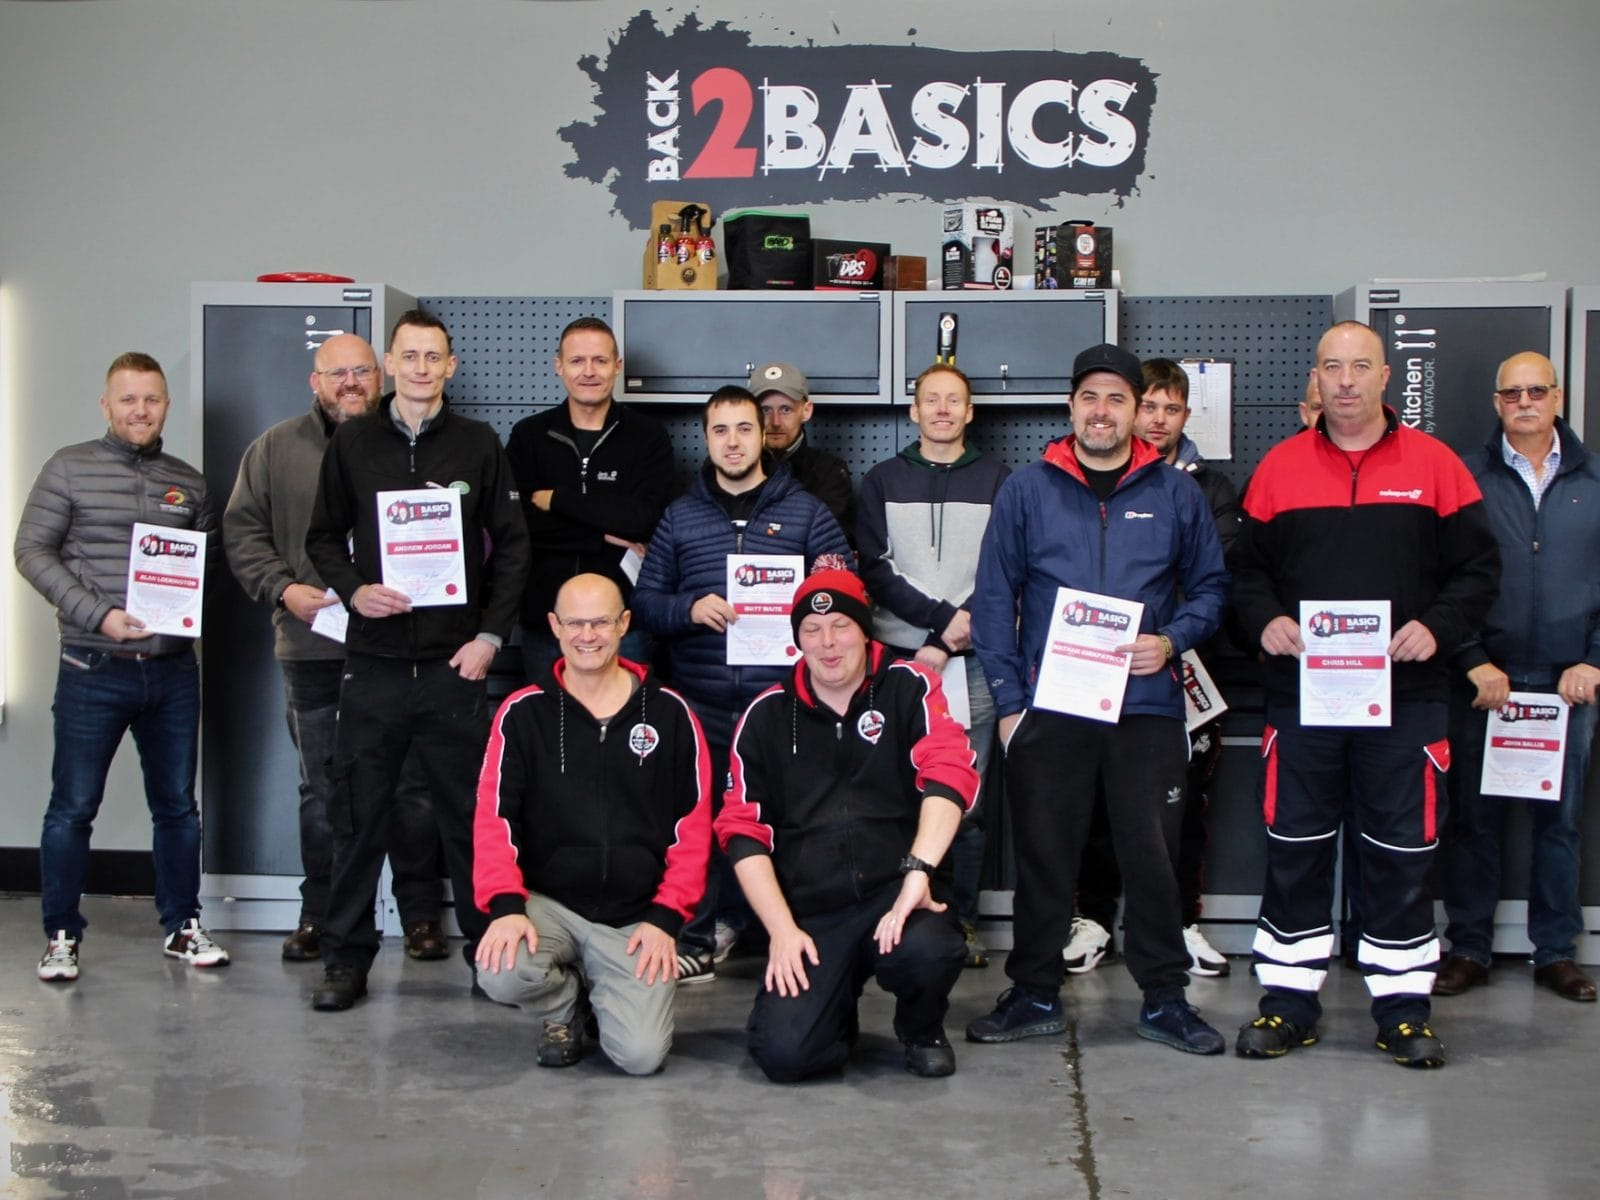 Course candidates with certificates